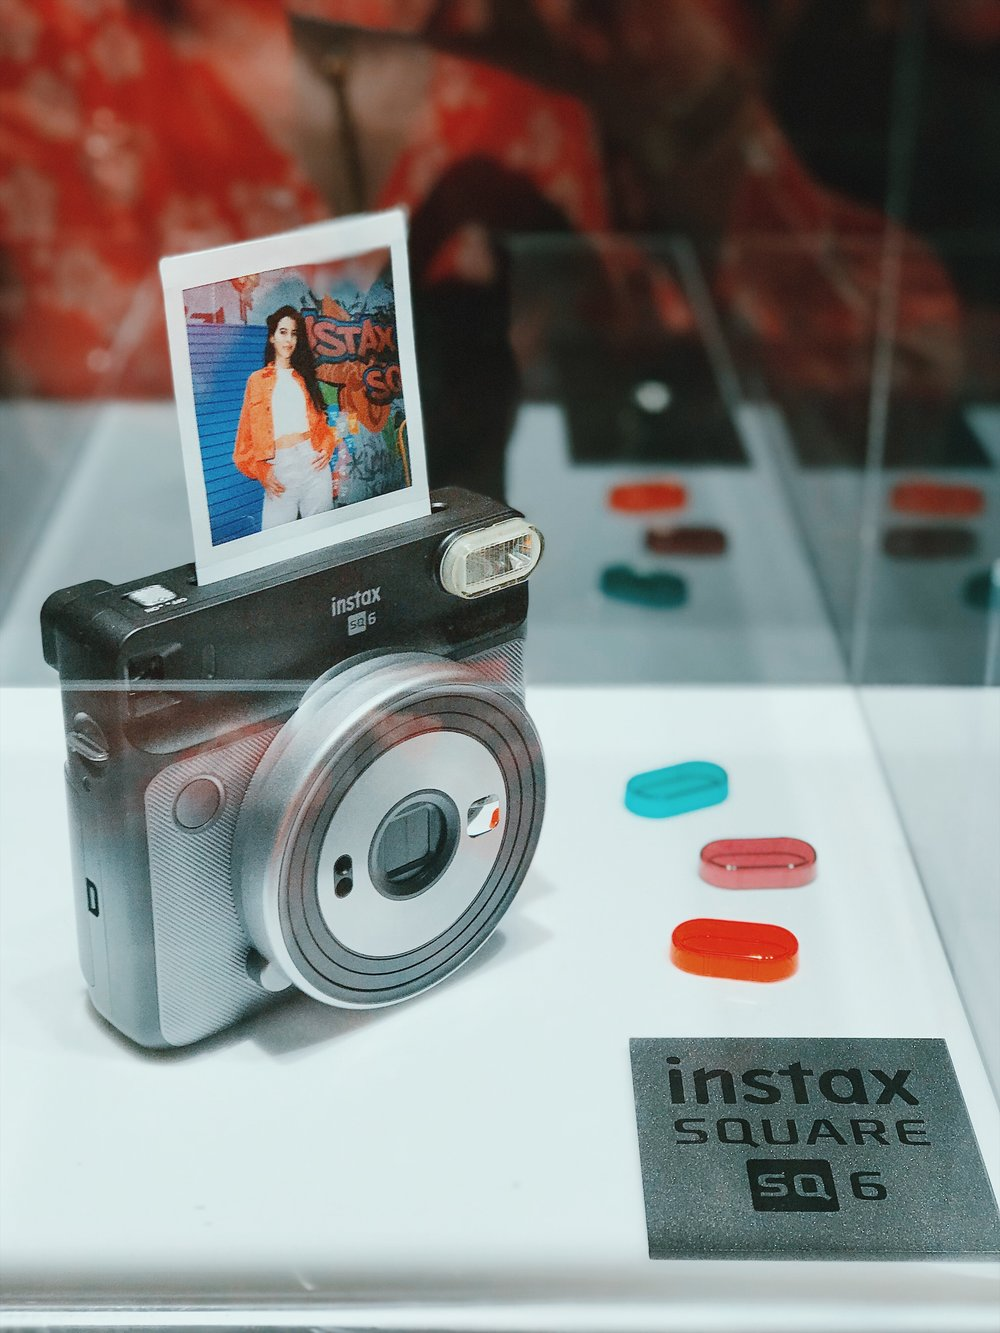 The Instax Square SQ6 comes in Graphite Grey (pictured), Blush Gold and Pearl White & includes 3 flash colour filters